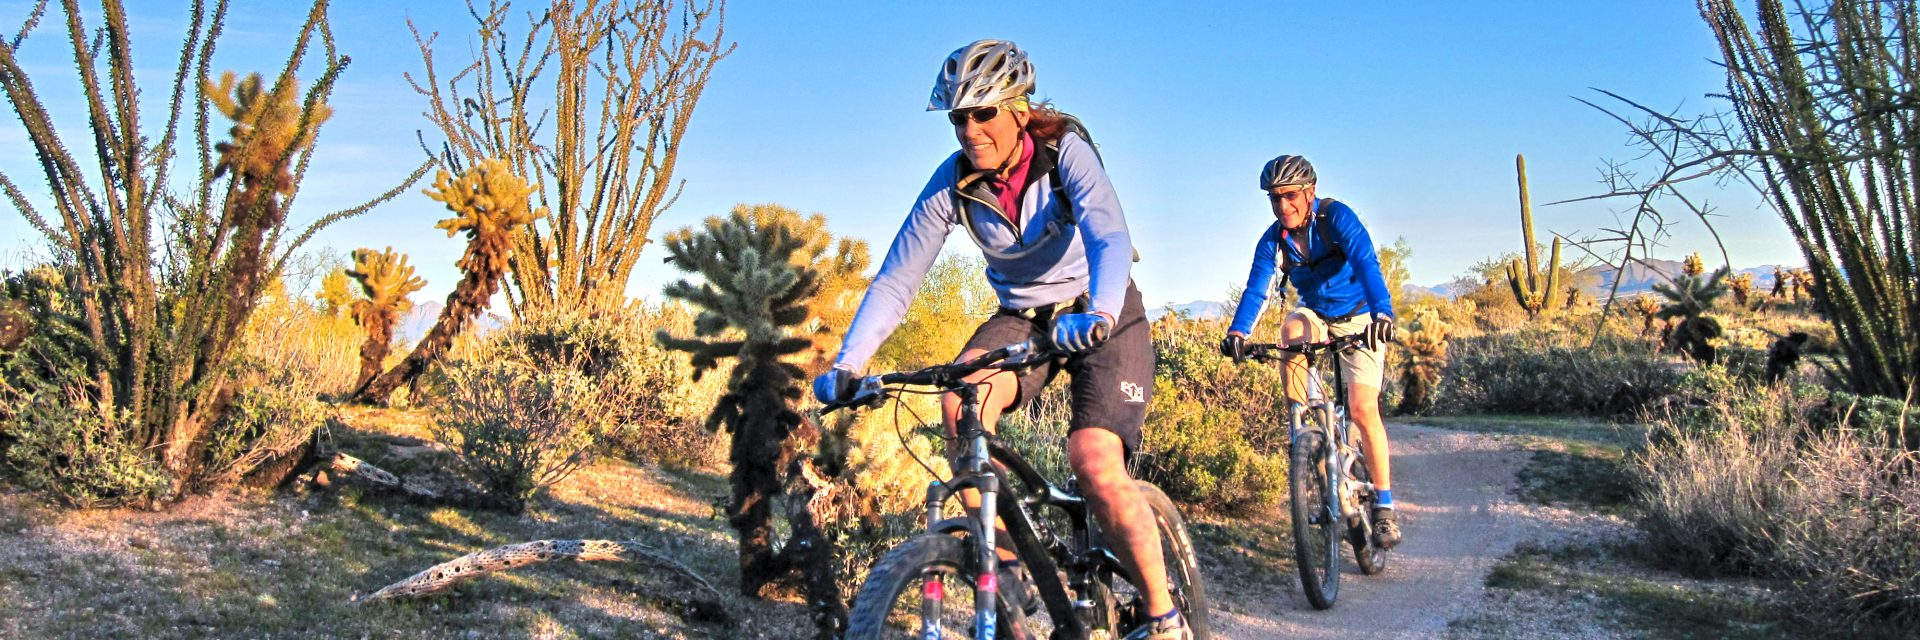 Even during the cold months of November and February, it's sunny and warm on the mountain bike trails in central Arizona